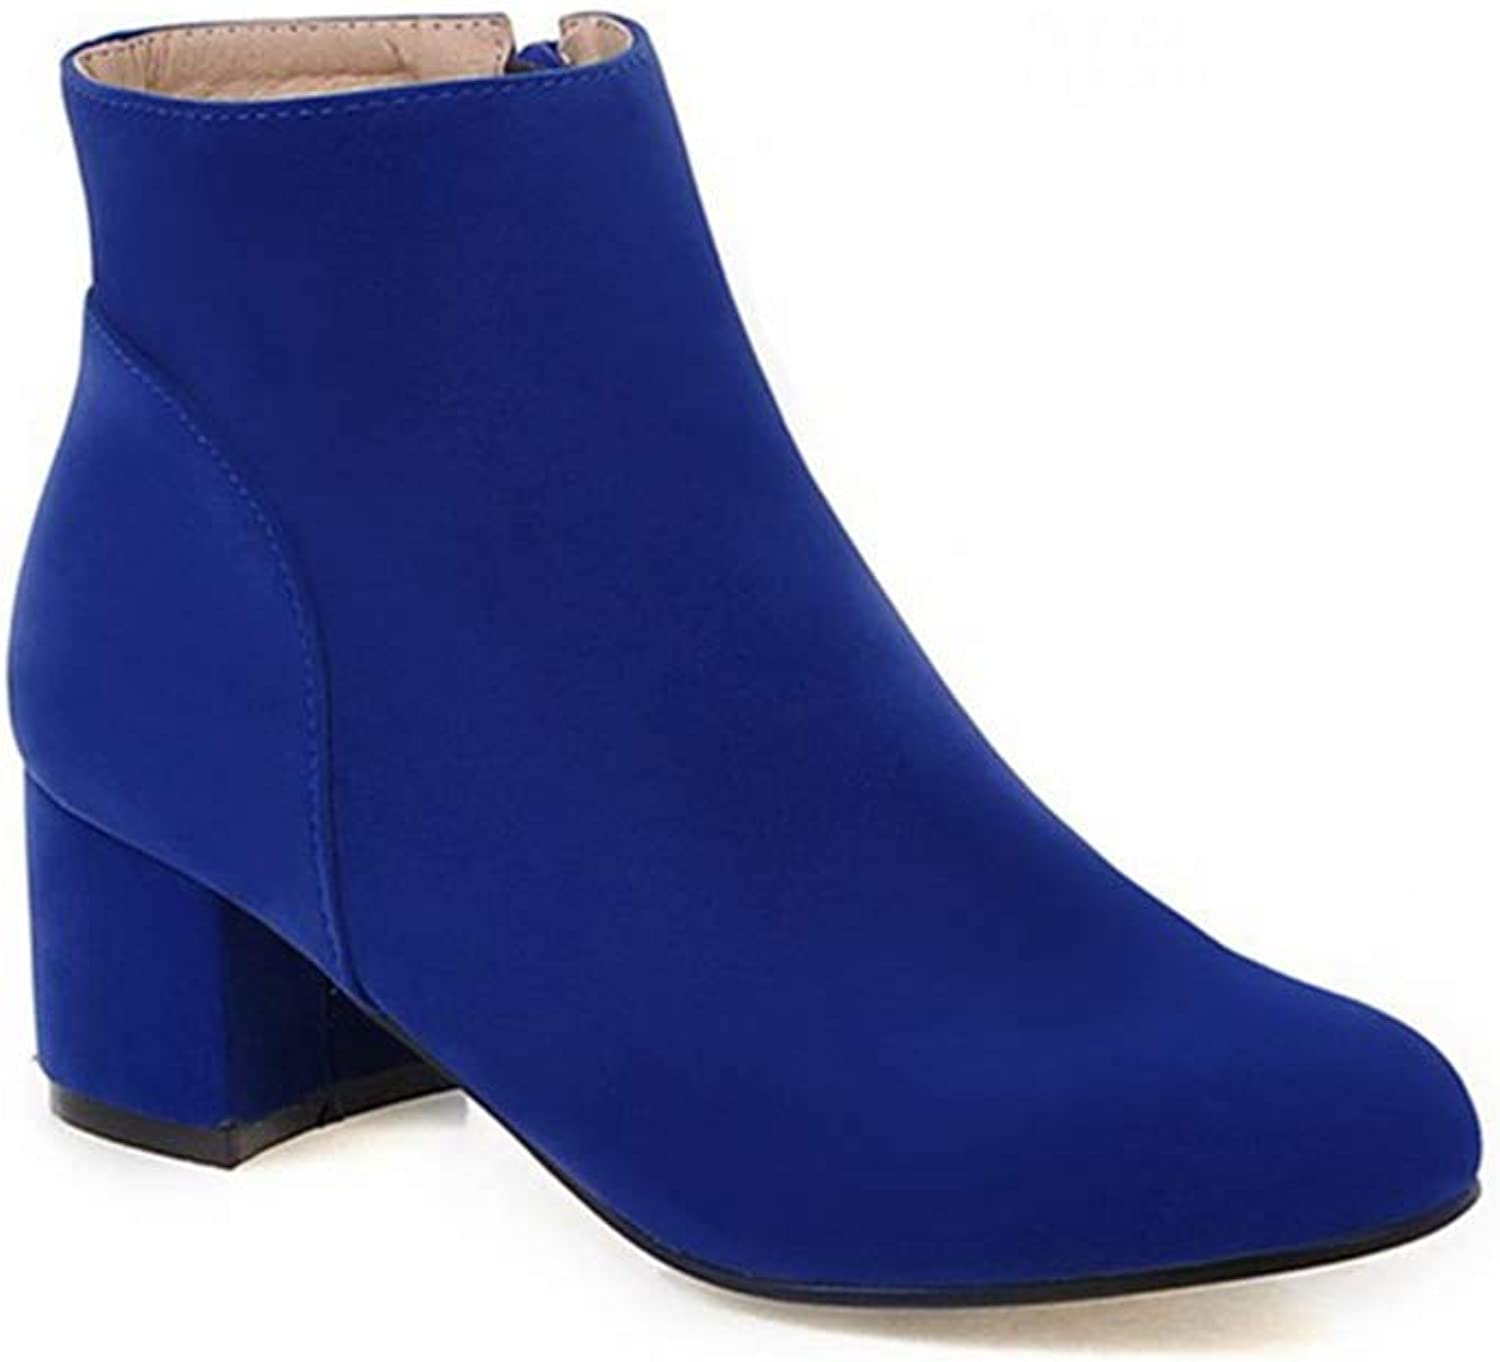 GIY Women's Pointed Toe Suede Dress Ankle Boots Chunky Mid Heel Zipper Bootie Comfy Fall Winter Short Boot